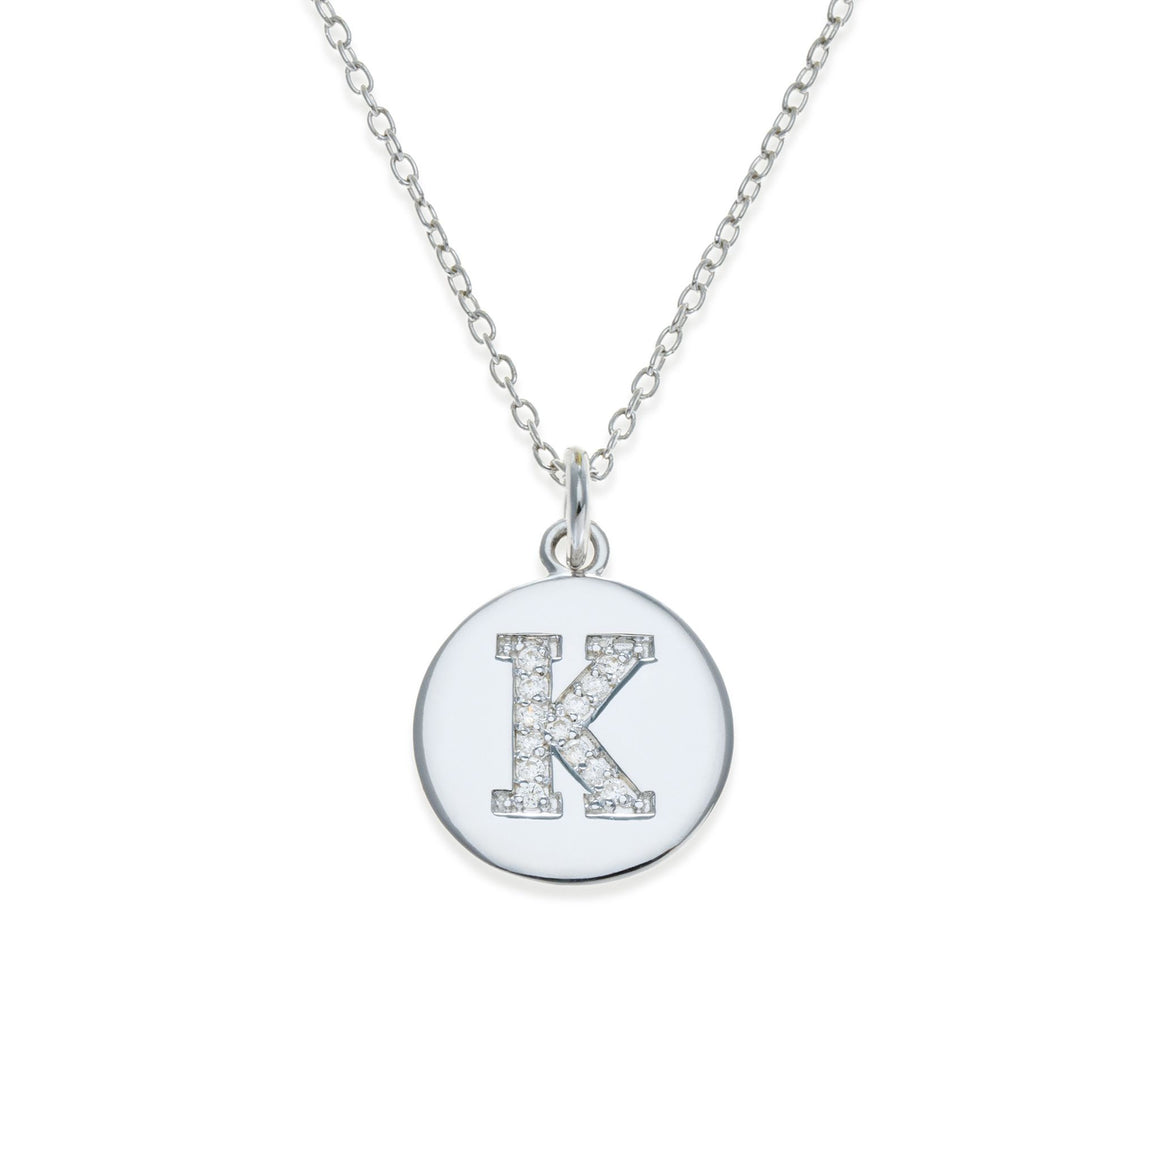 Sterling Silver Initial Necklace - K | Kith & Kin | It's Personal Collection